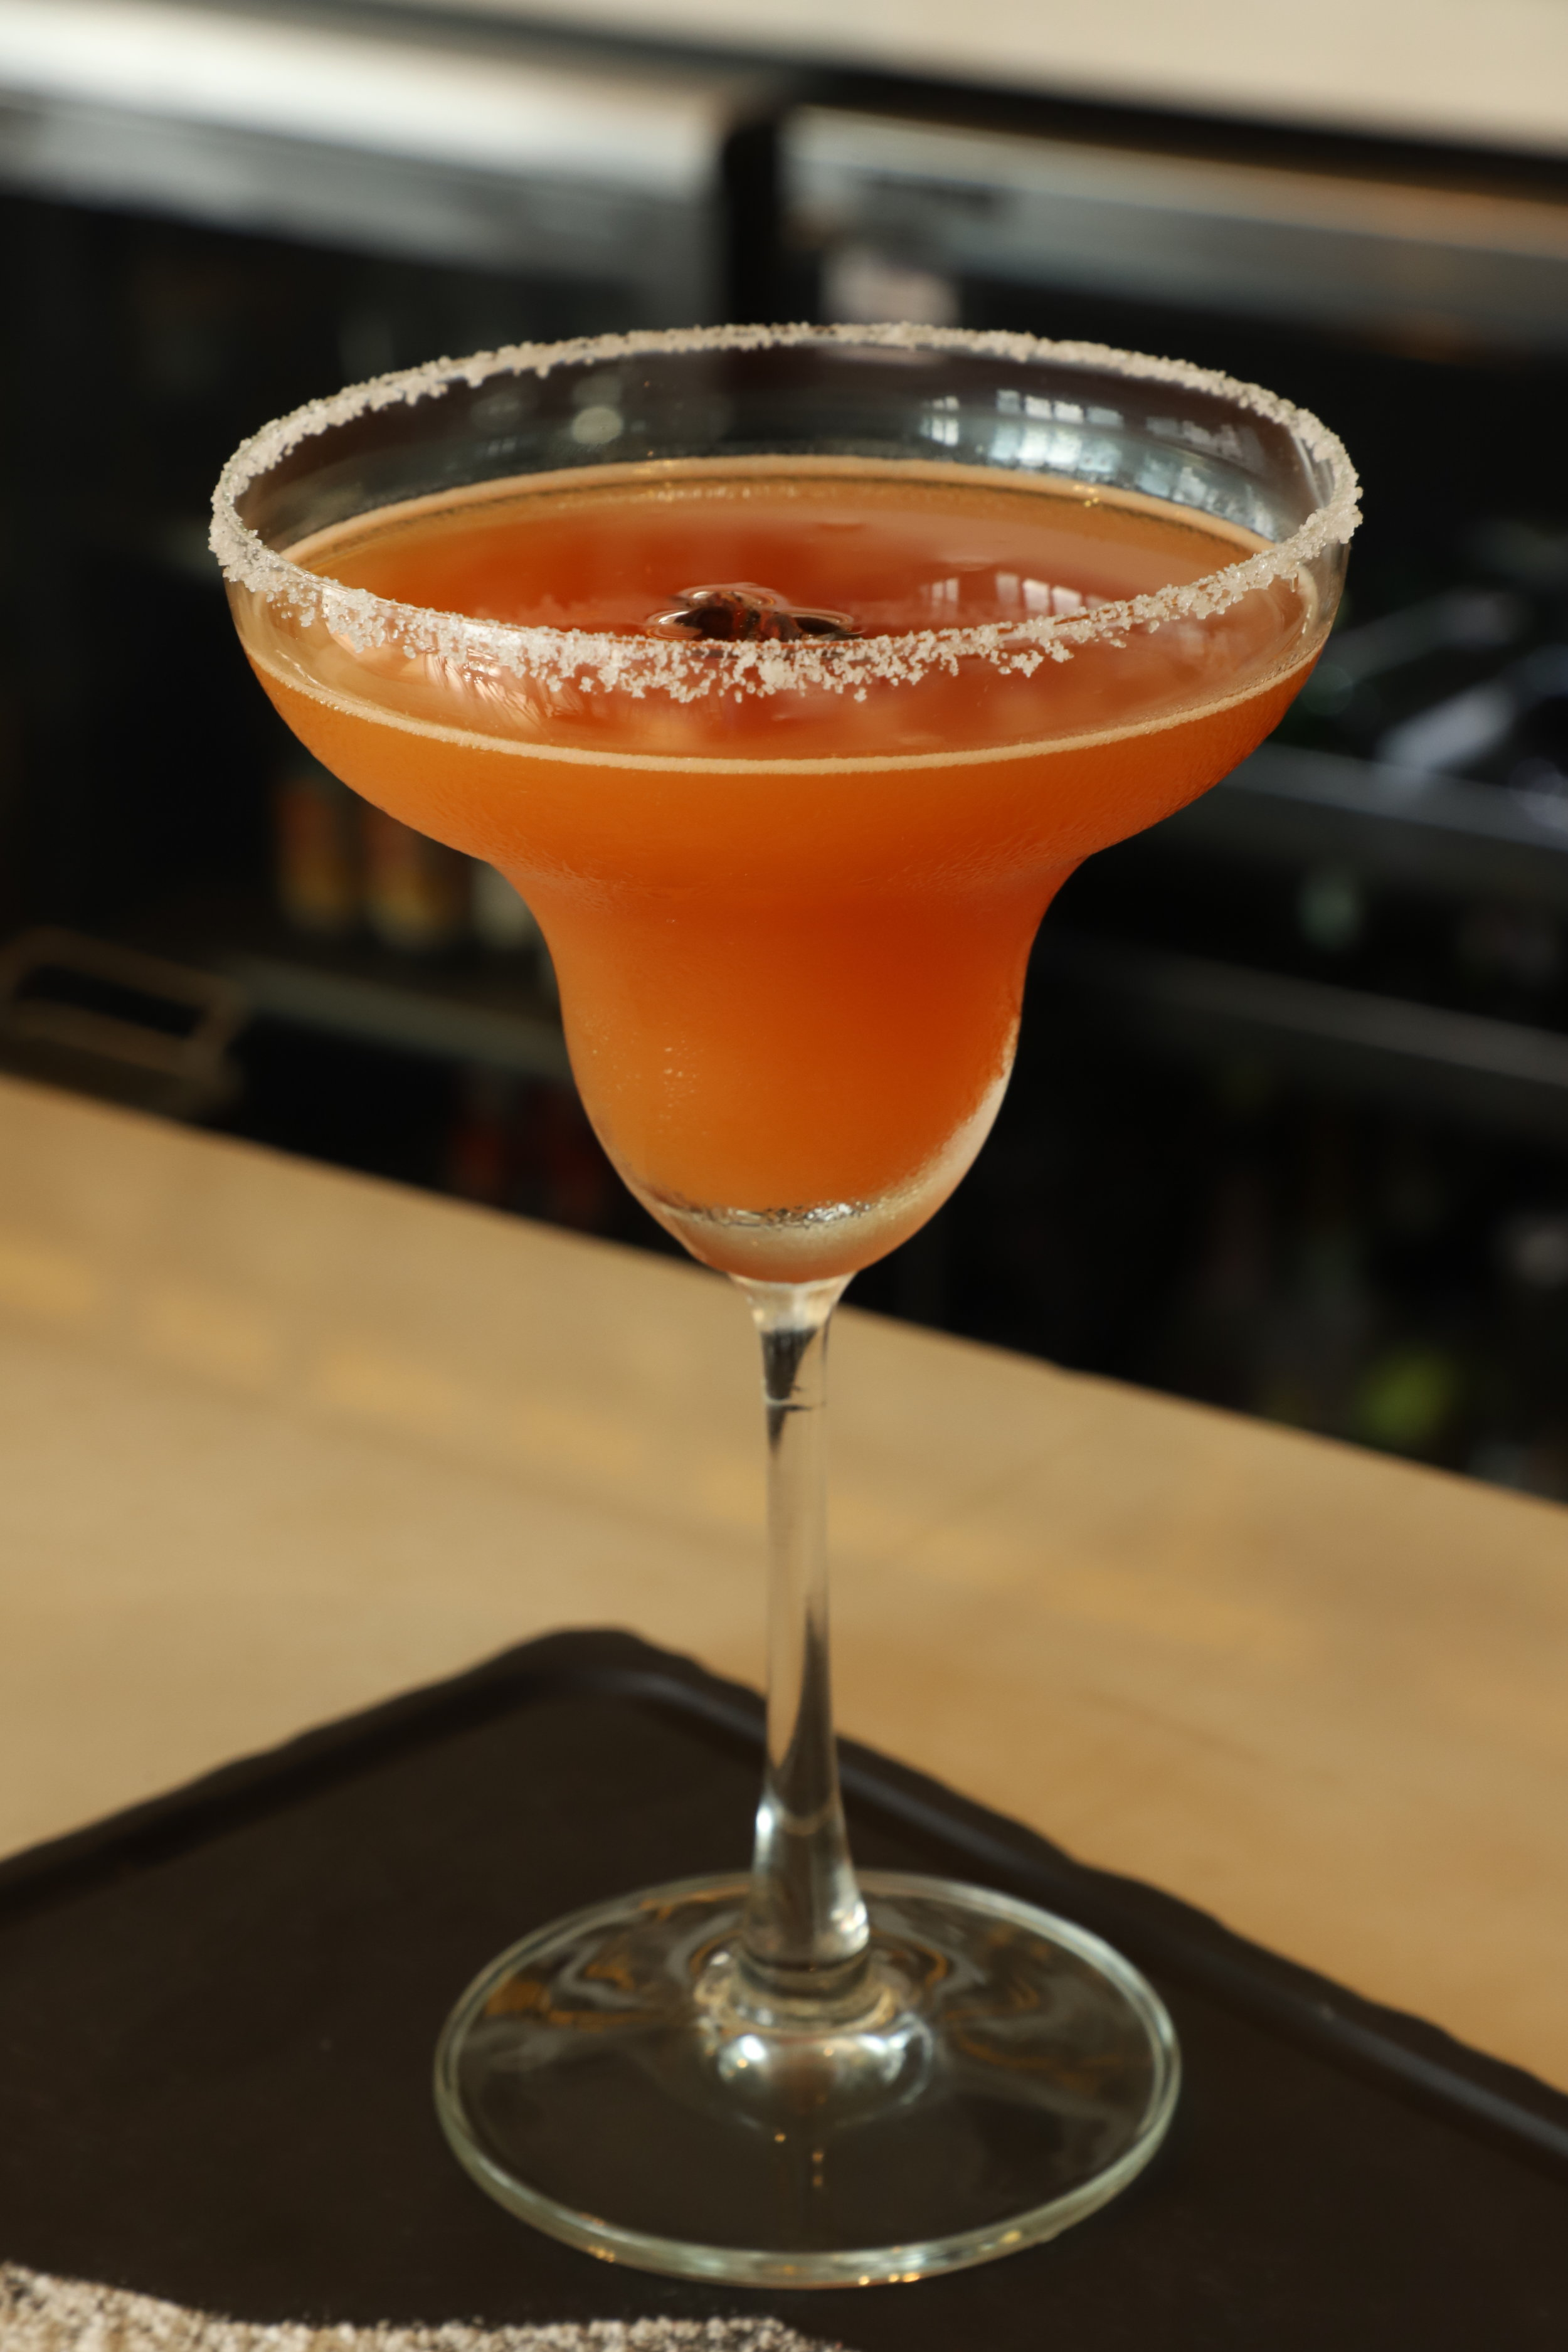 Triangle: with Carrot and Tequila